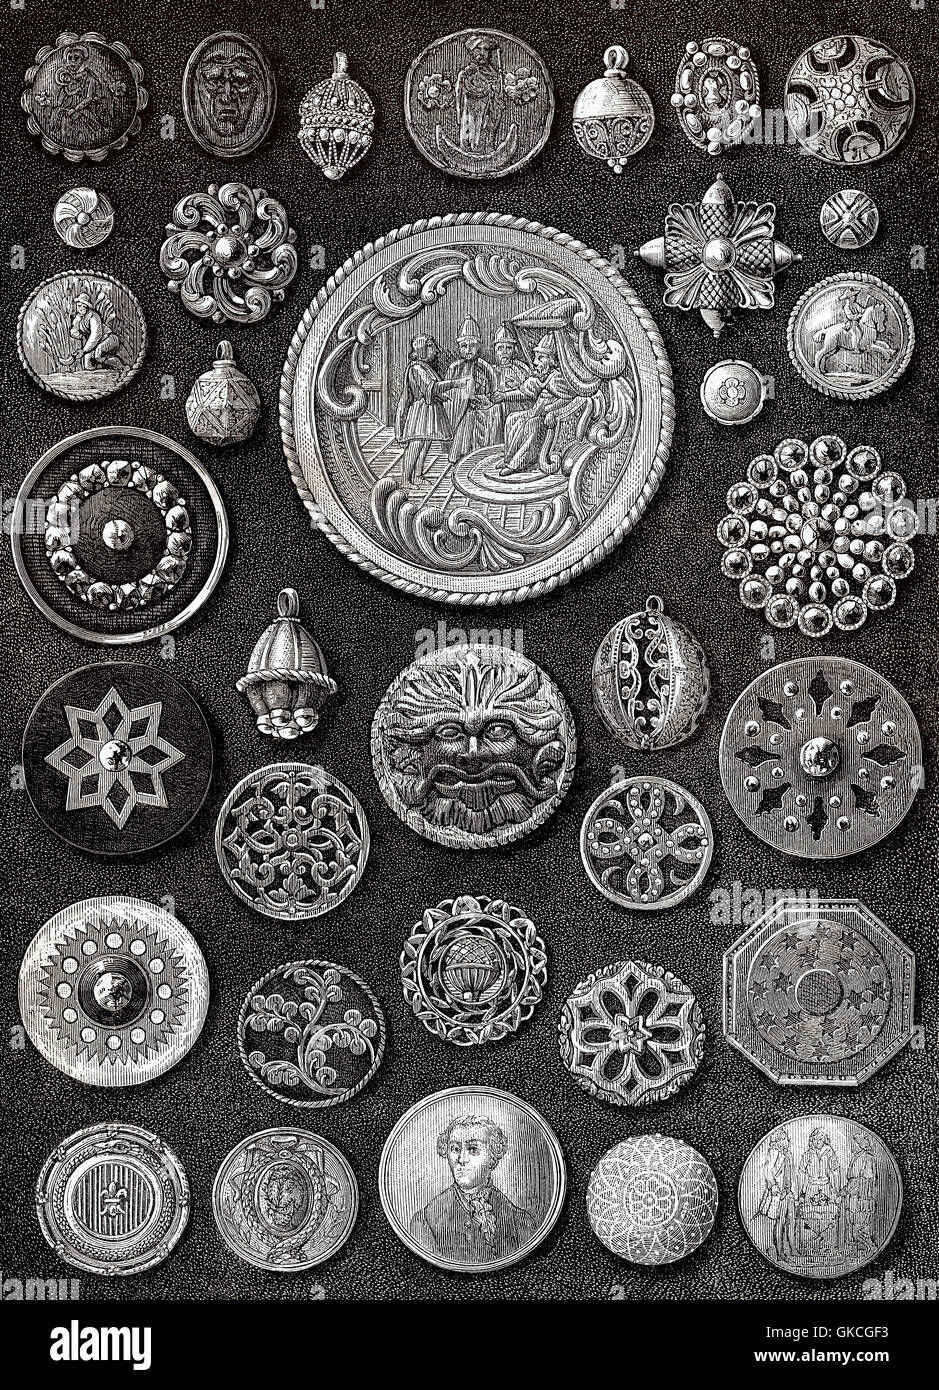 Old buttons - Stock Image